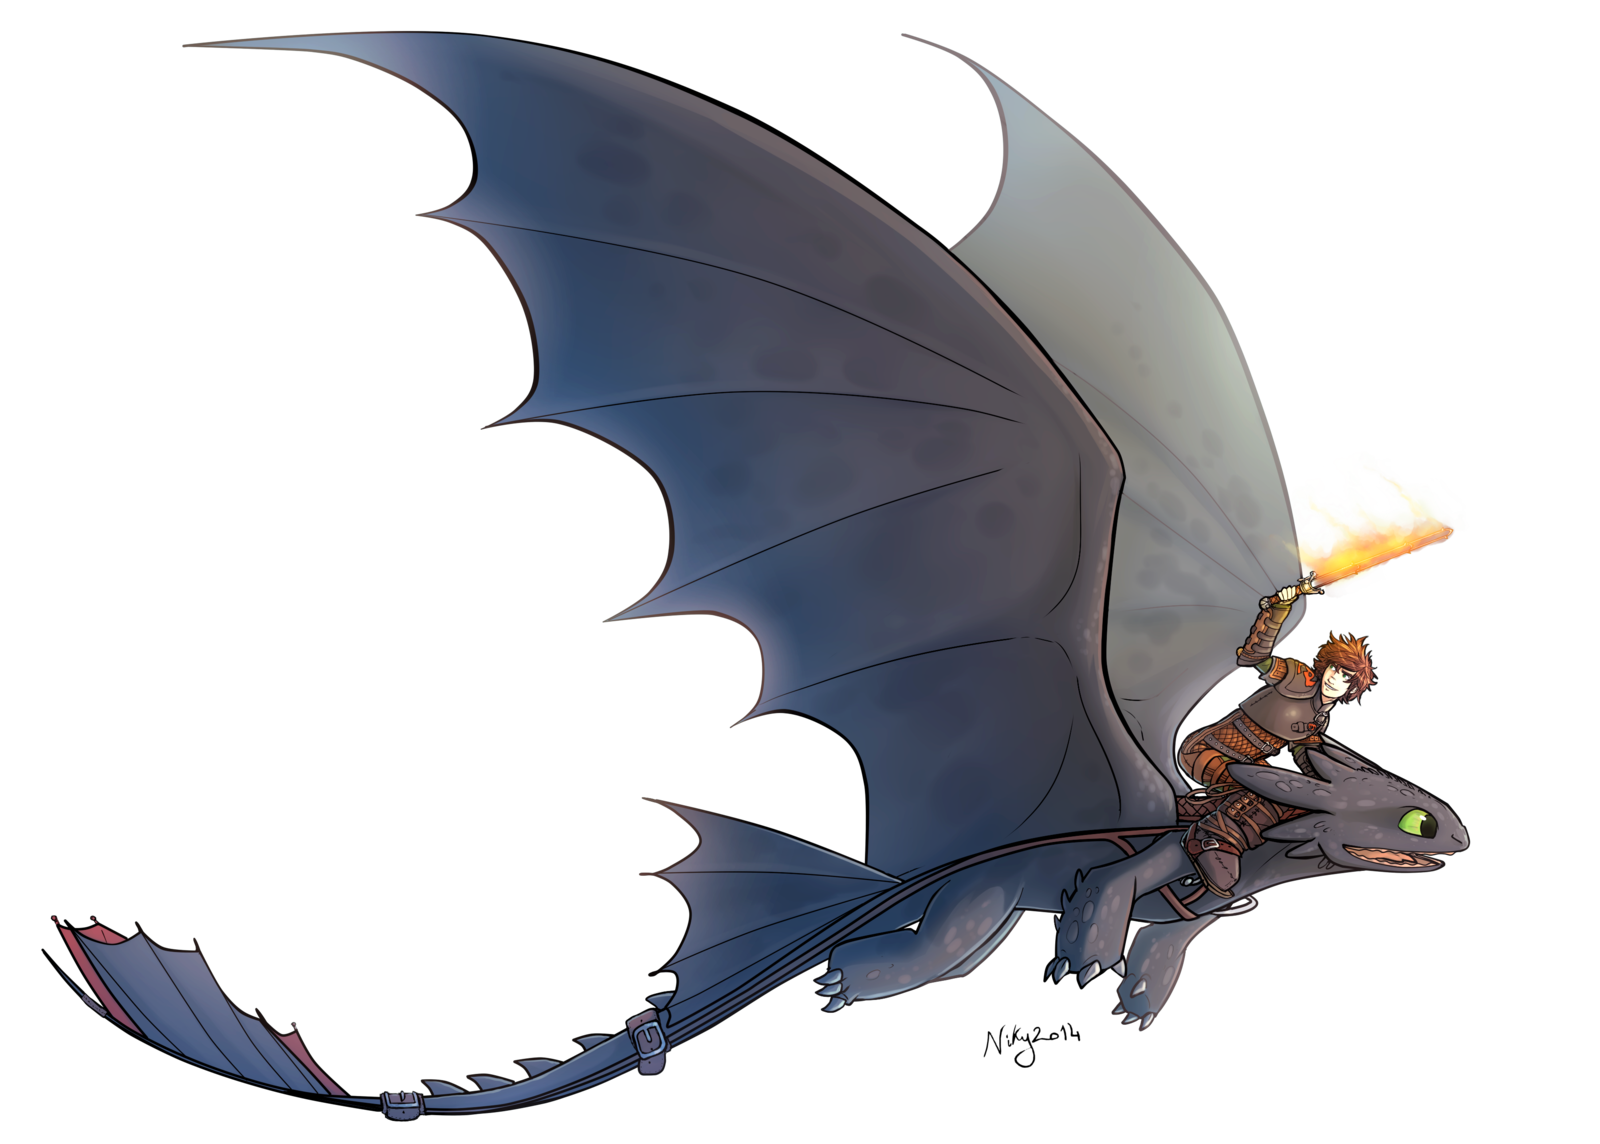 Httyd 2 Hiccup and Toothless by MatildaDavidson.deviantart ...